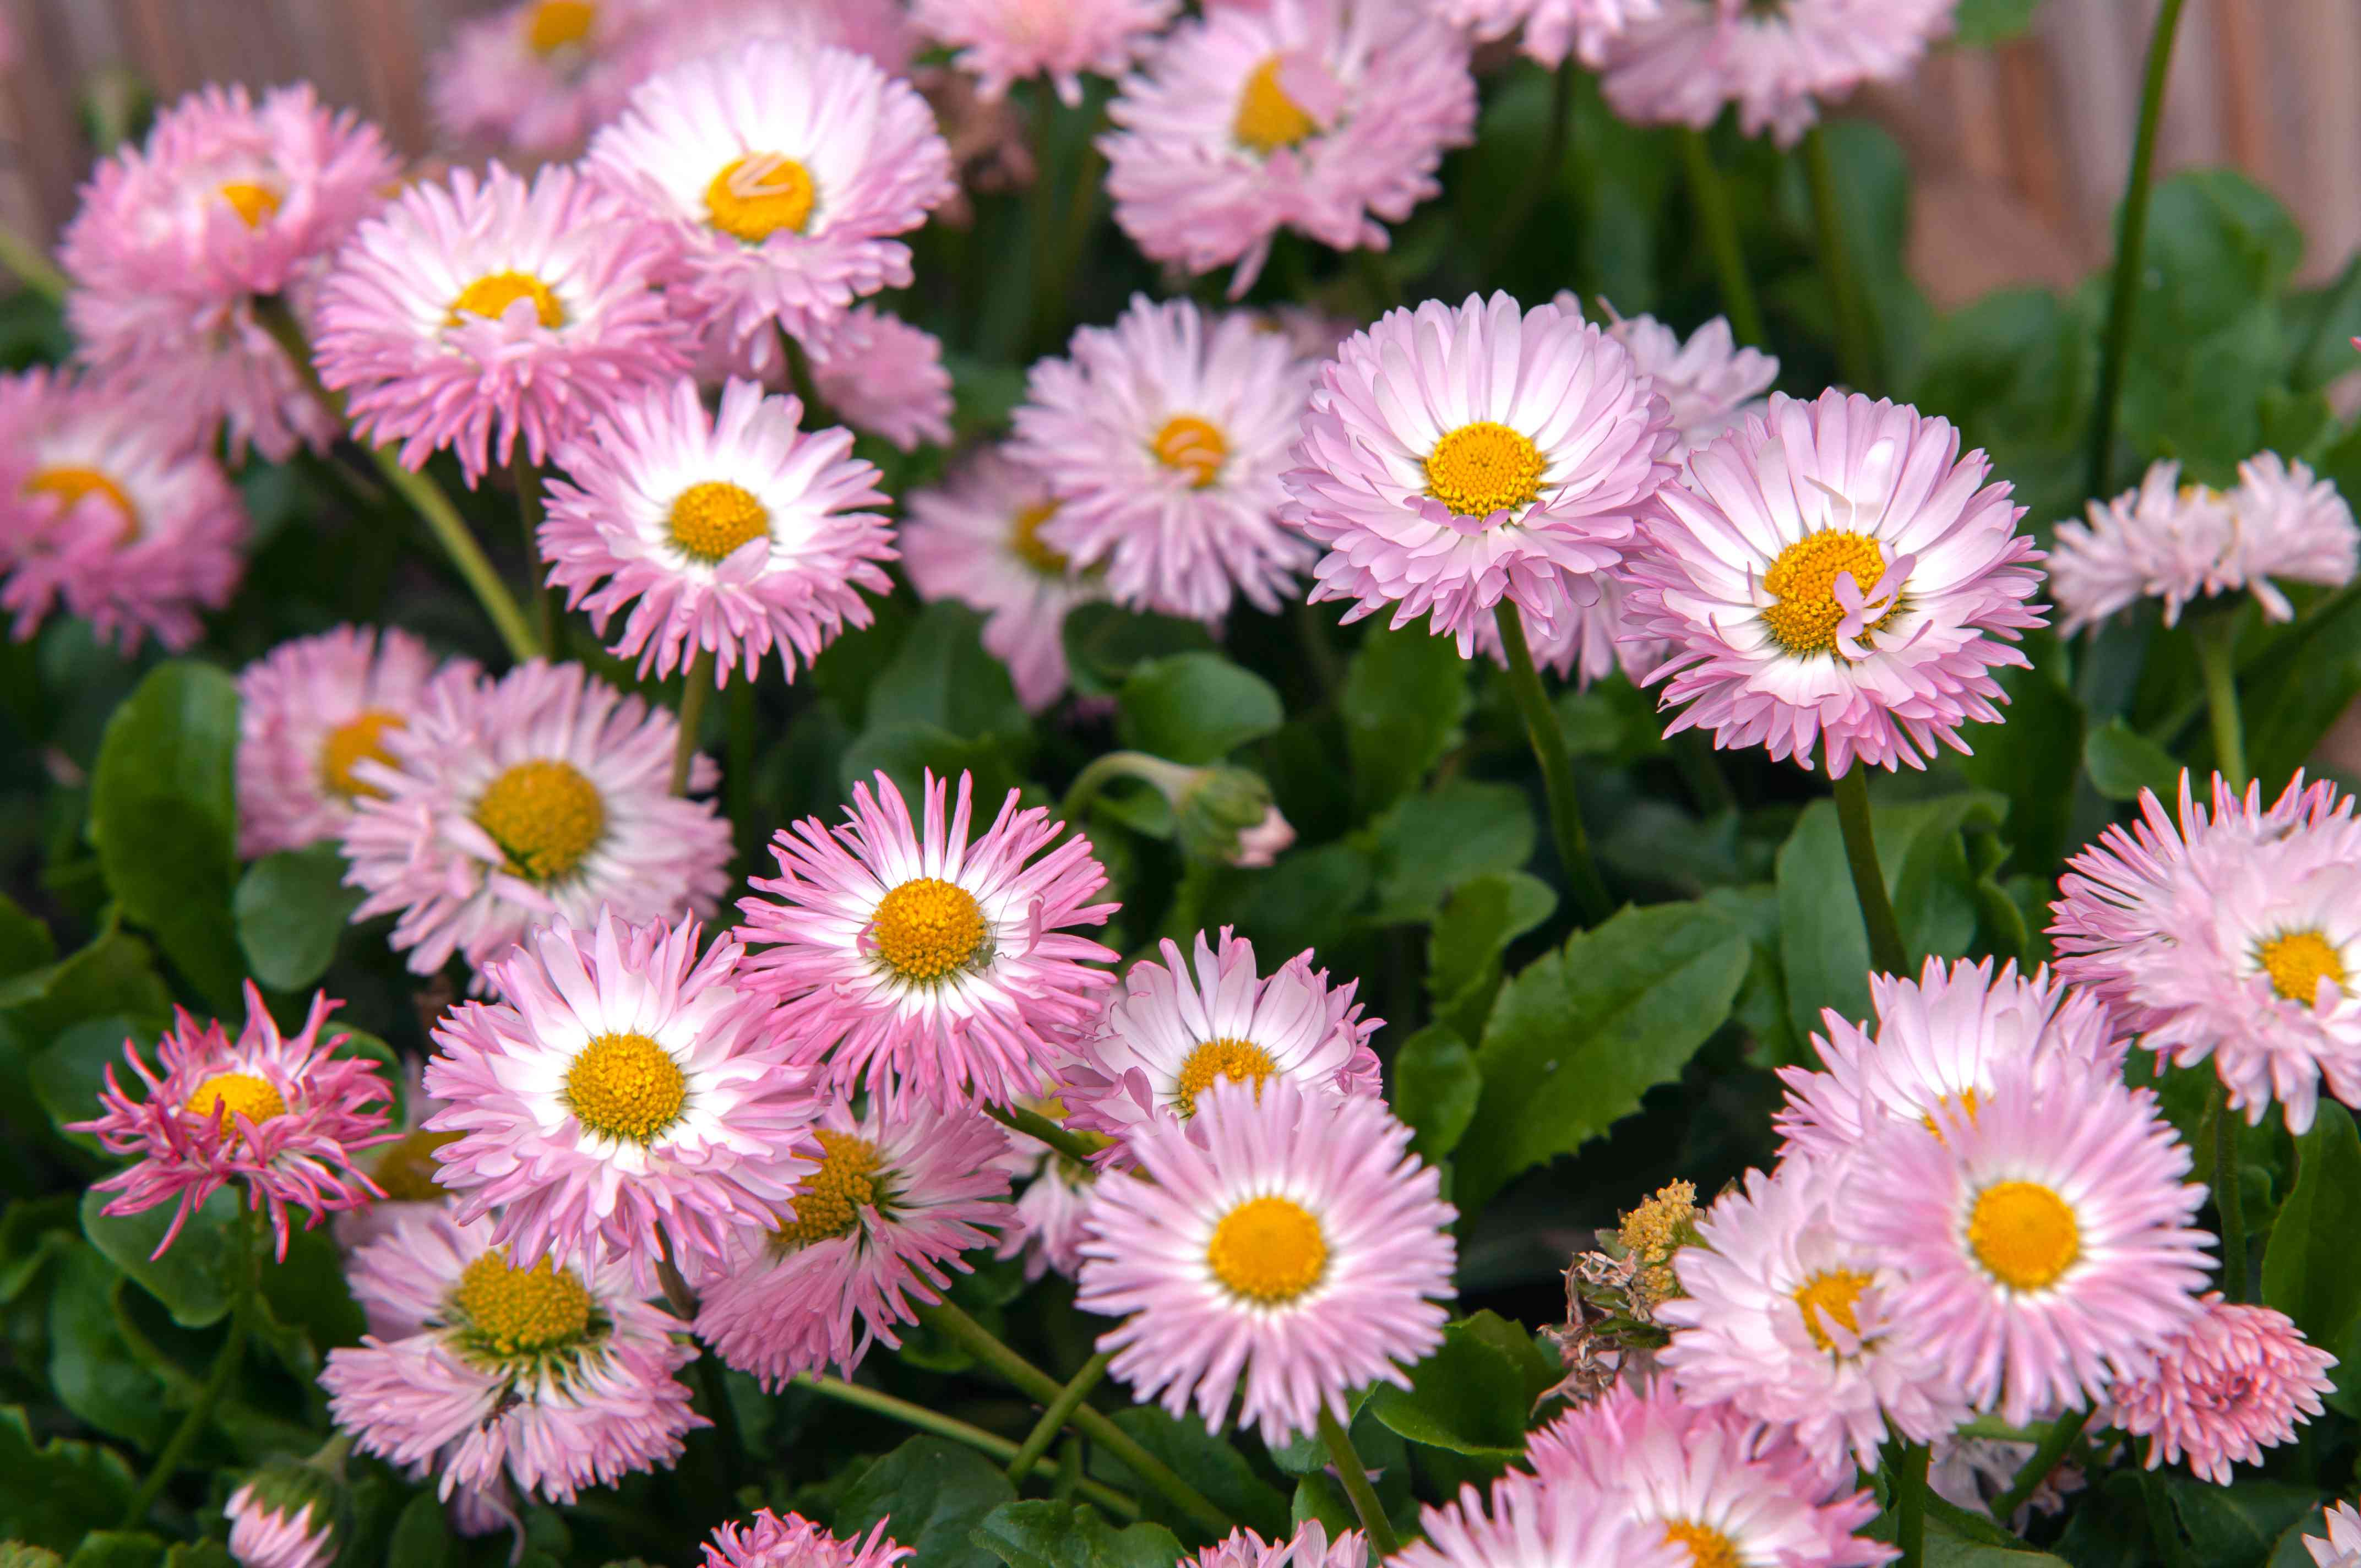 English daisy with pink flowers